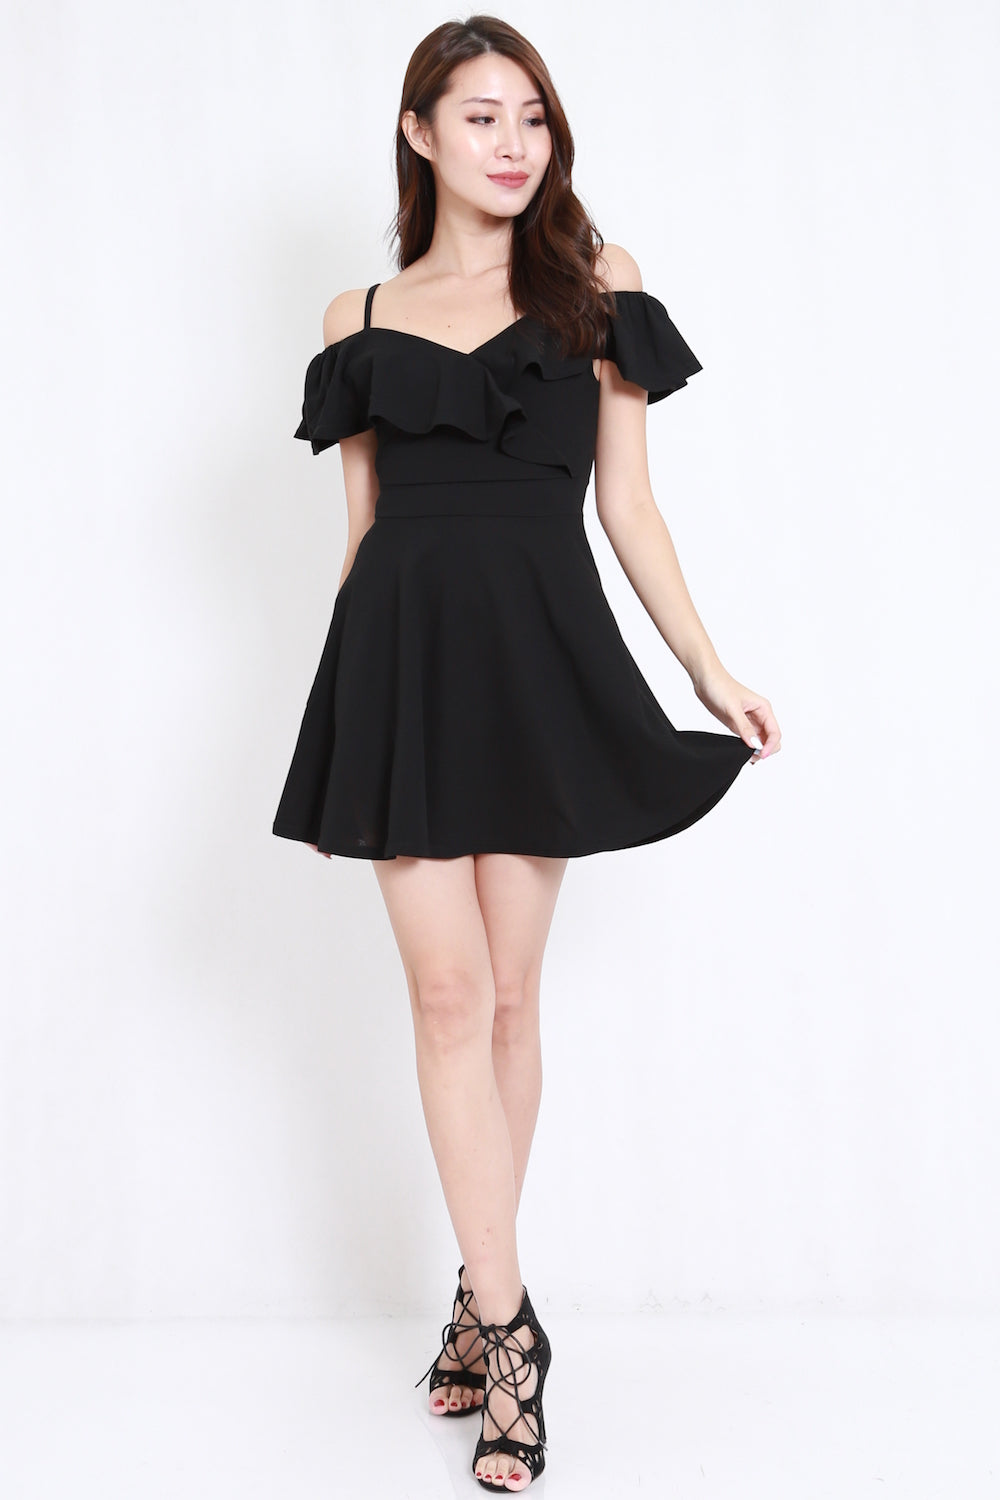 bca1fb23a9 Sweetheart Off Shoulder Skater Dress (Black) – Carrislabelle